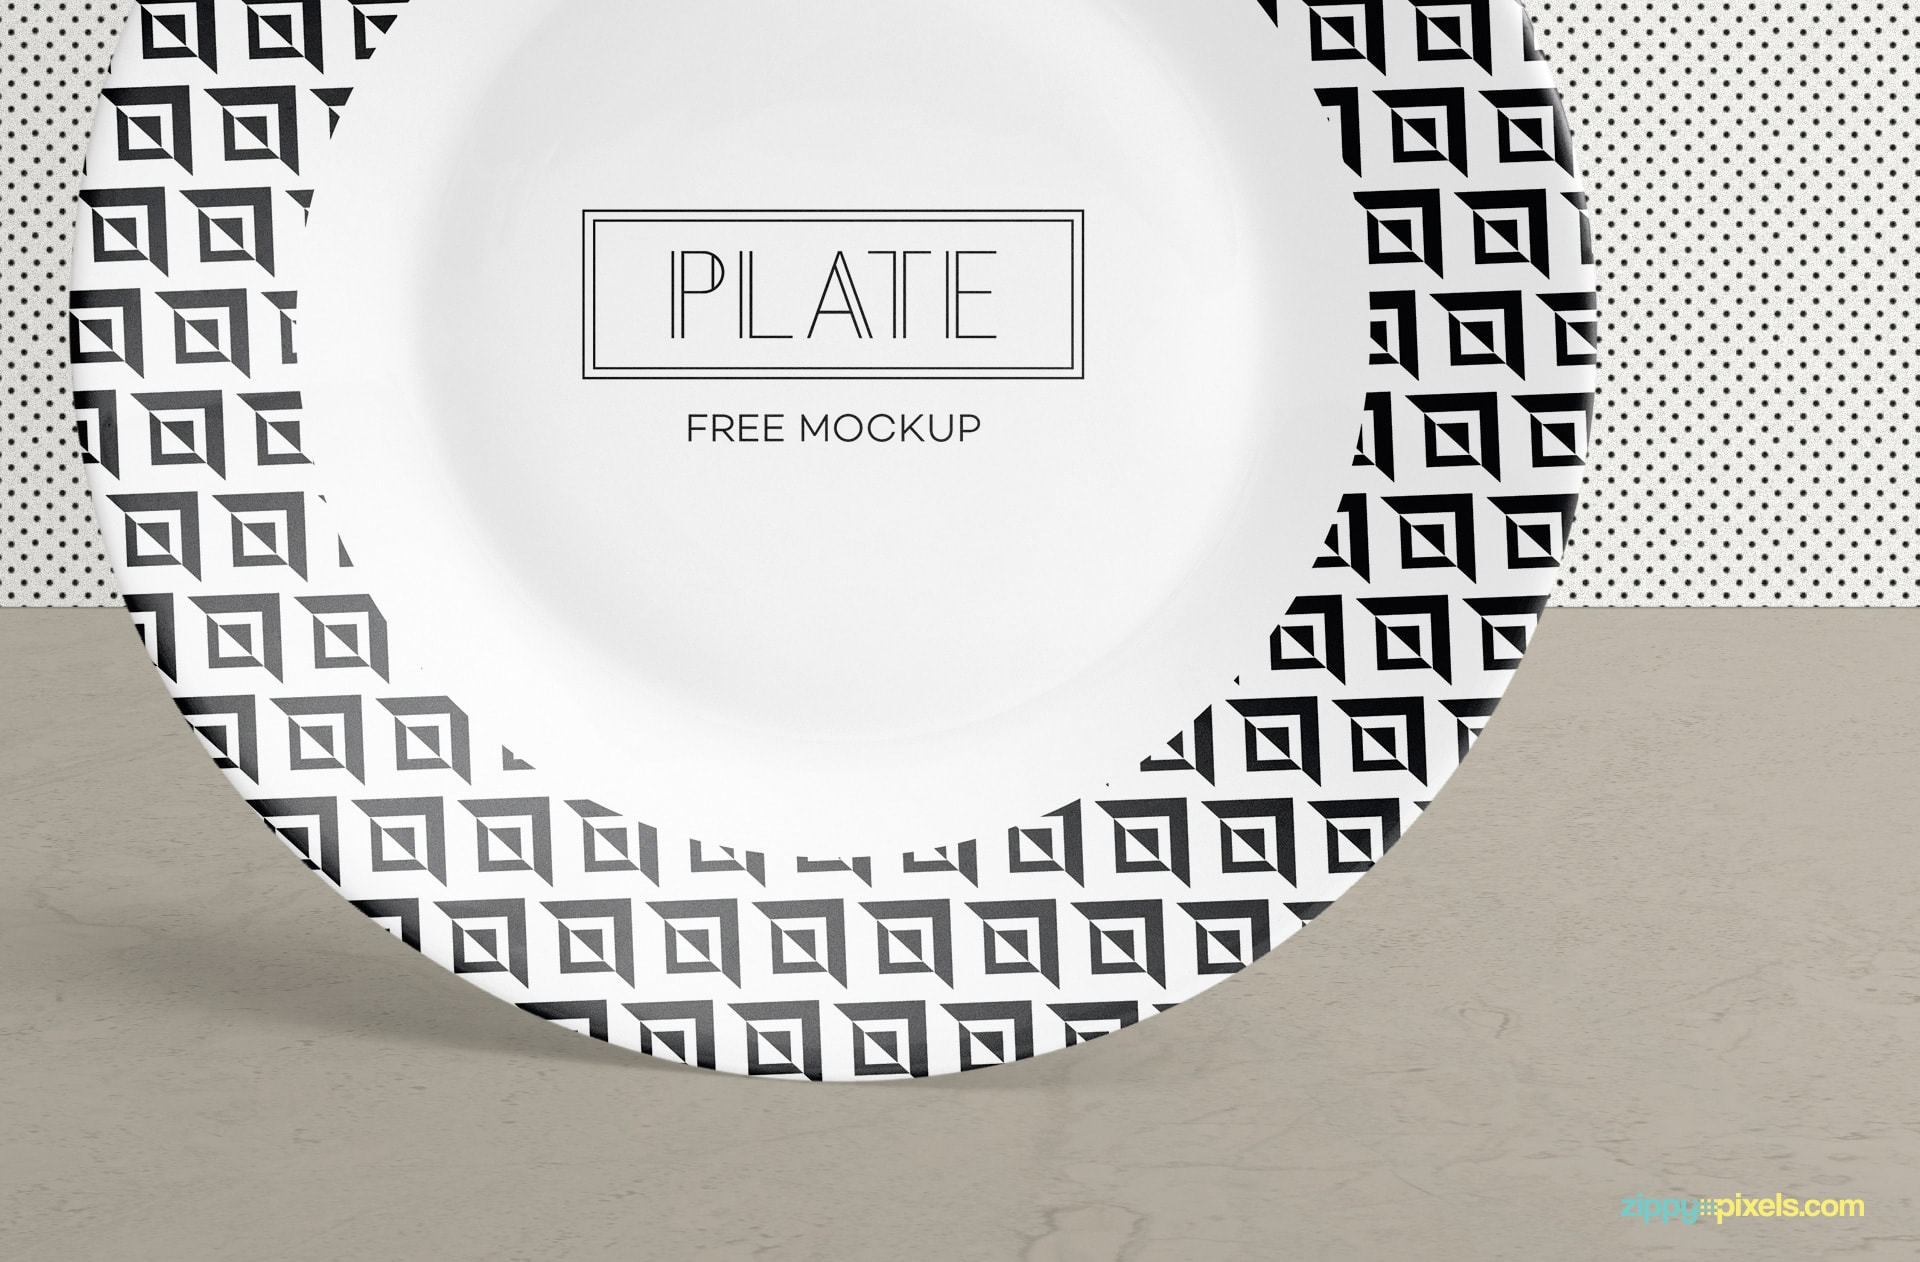 You can adjust the shadows of this standing plate mockup.